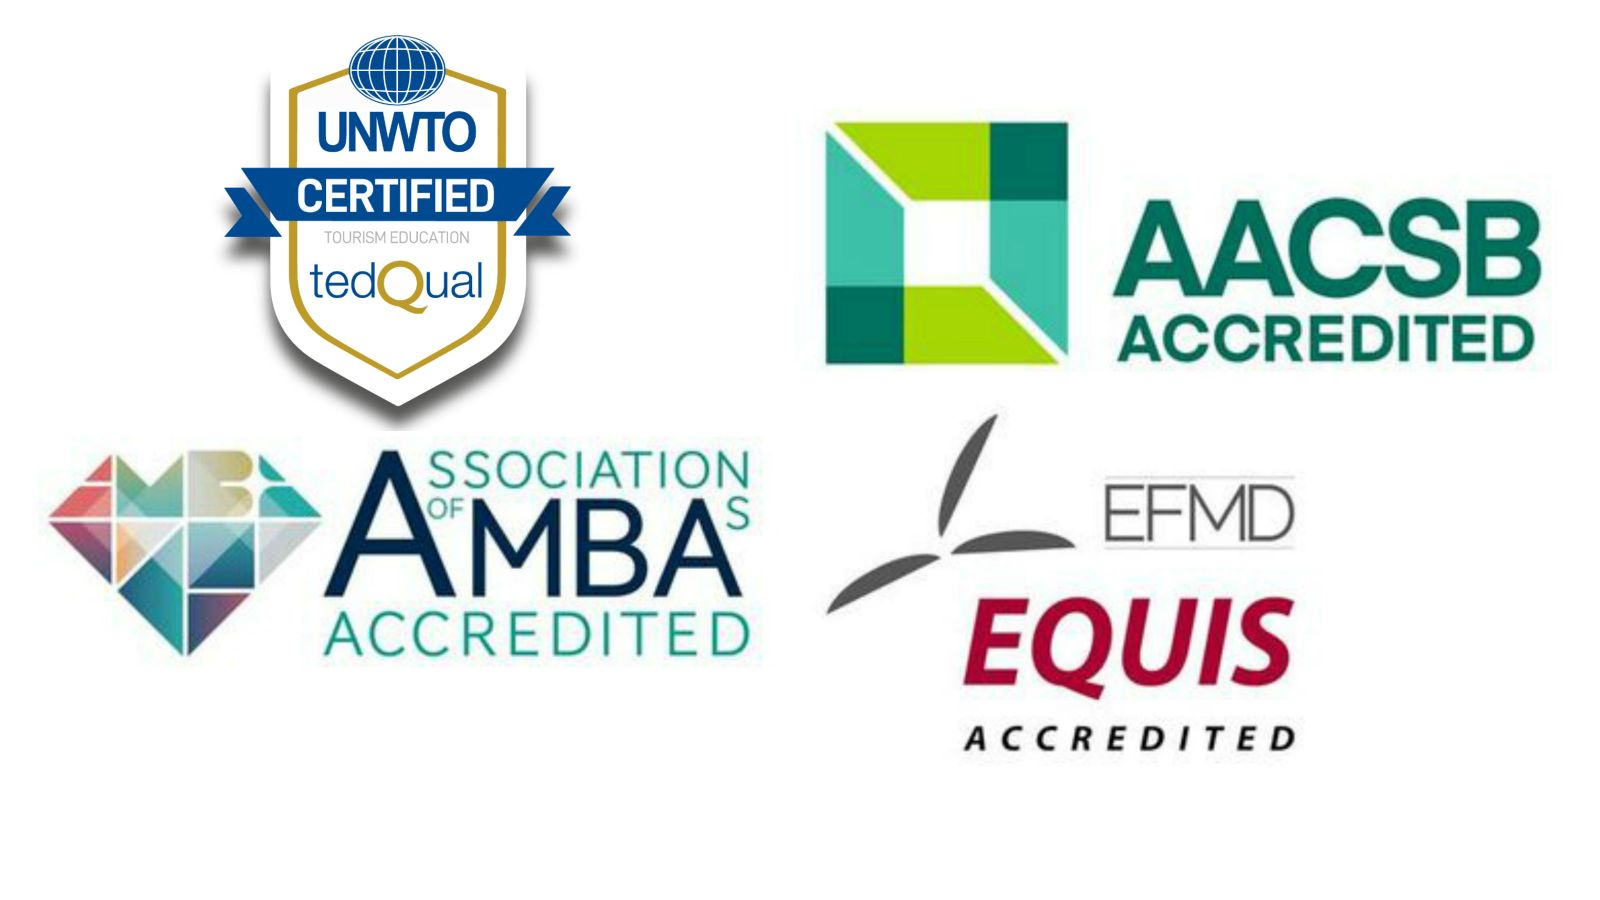 School of Management's accreditation